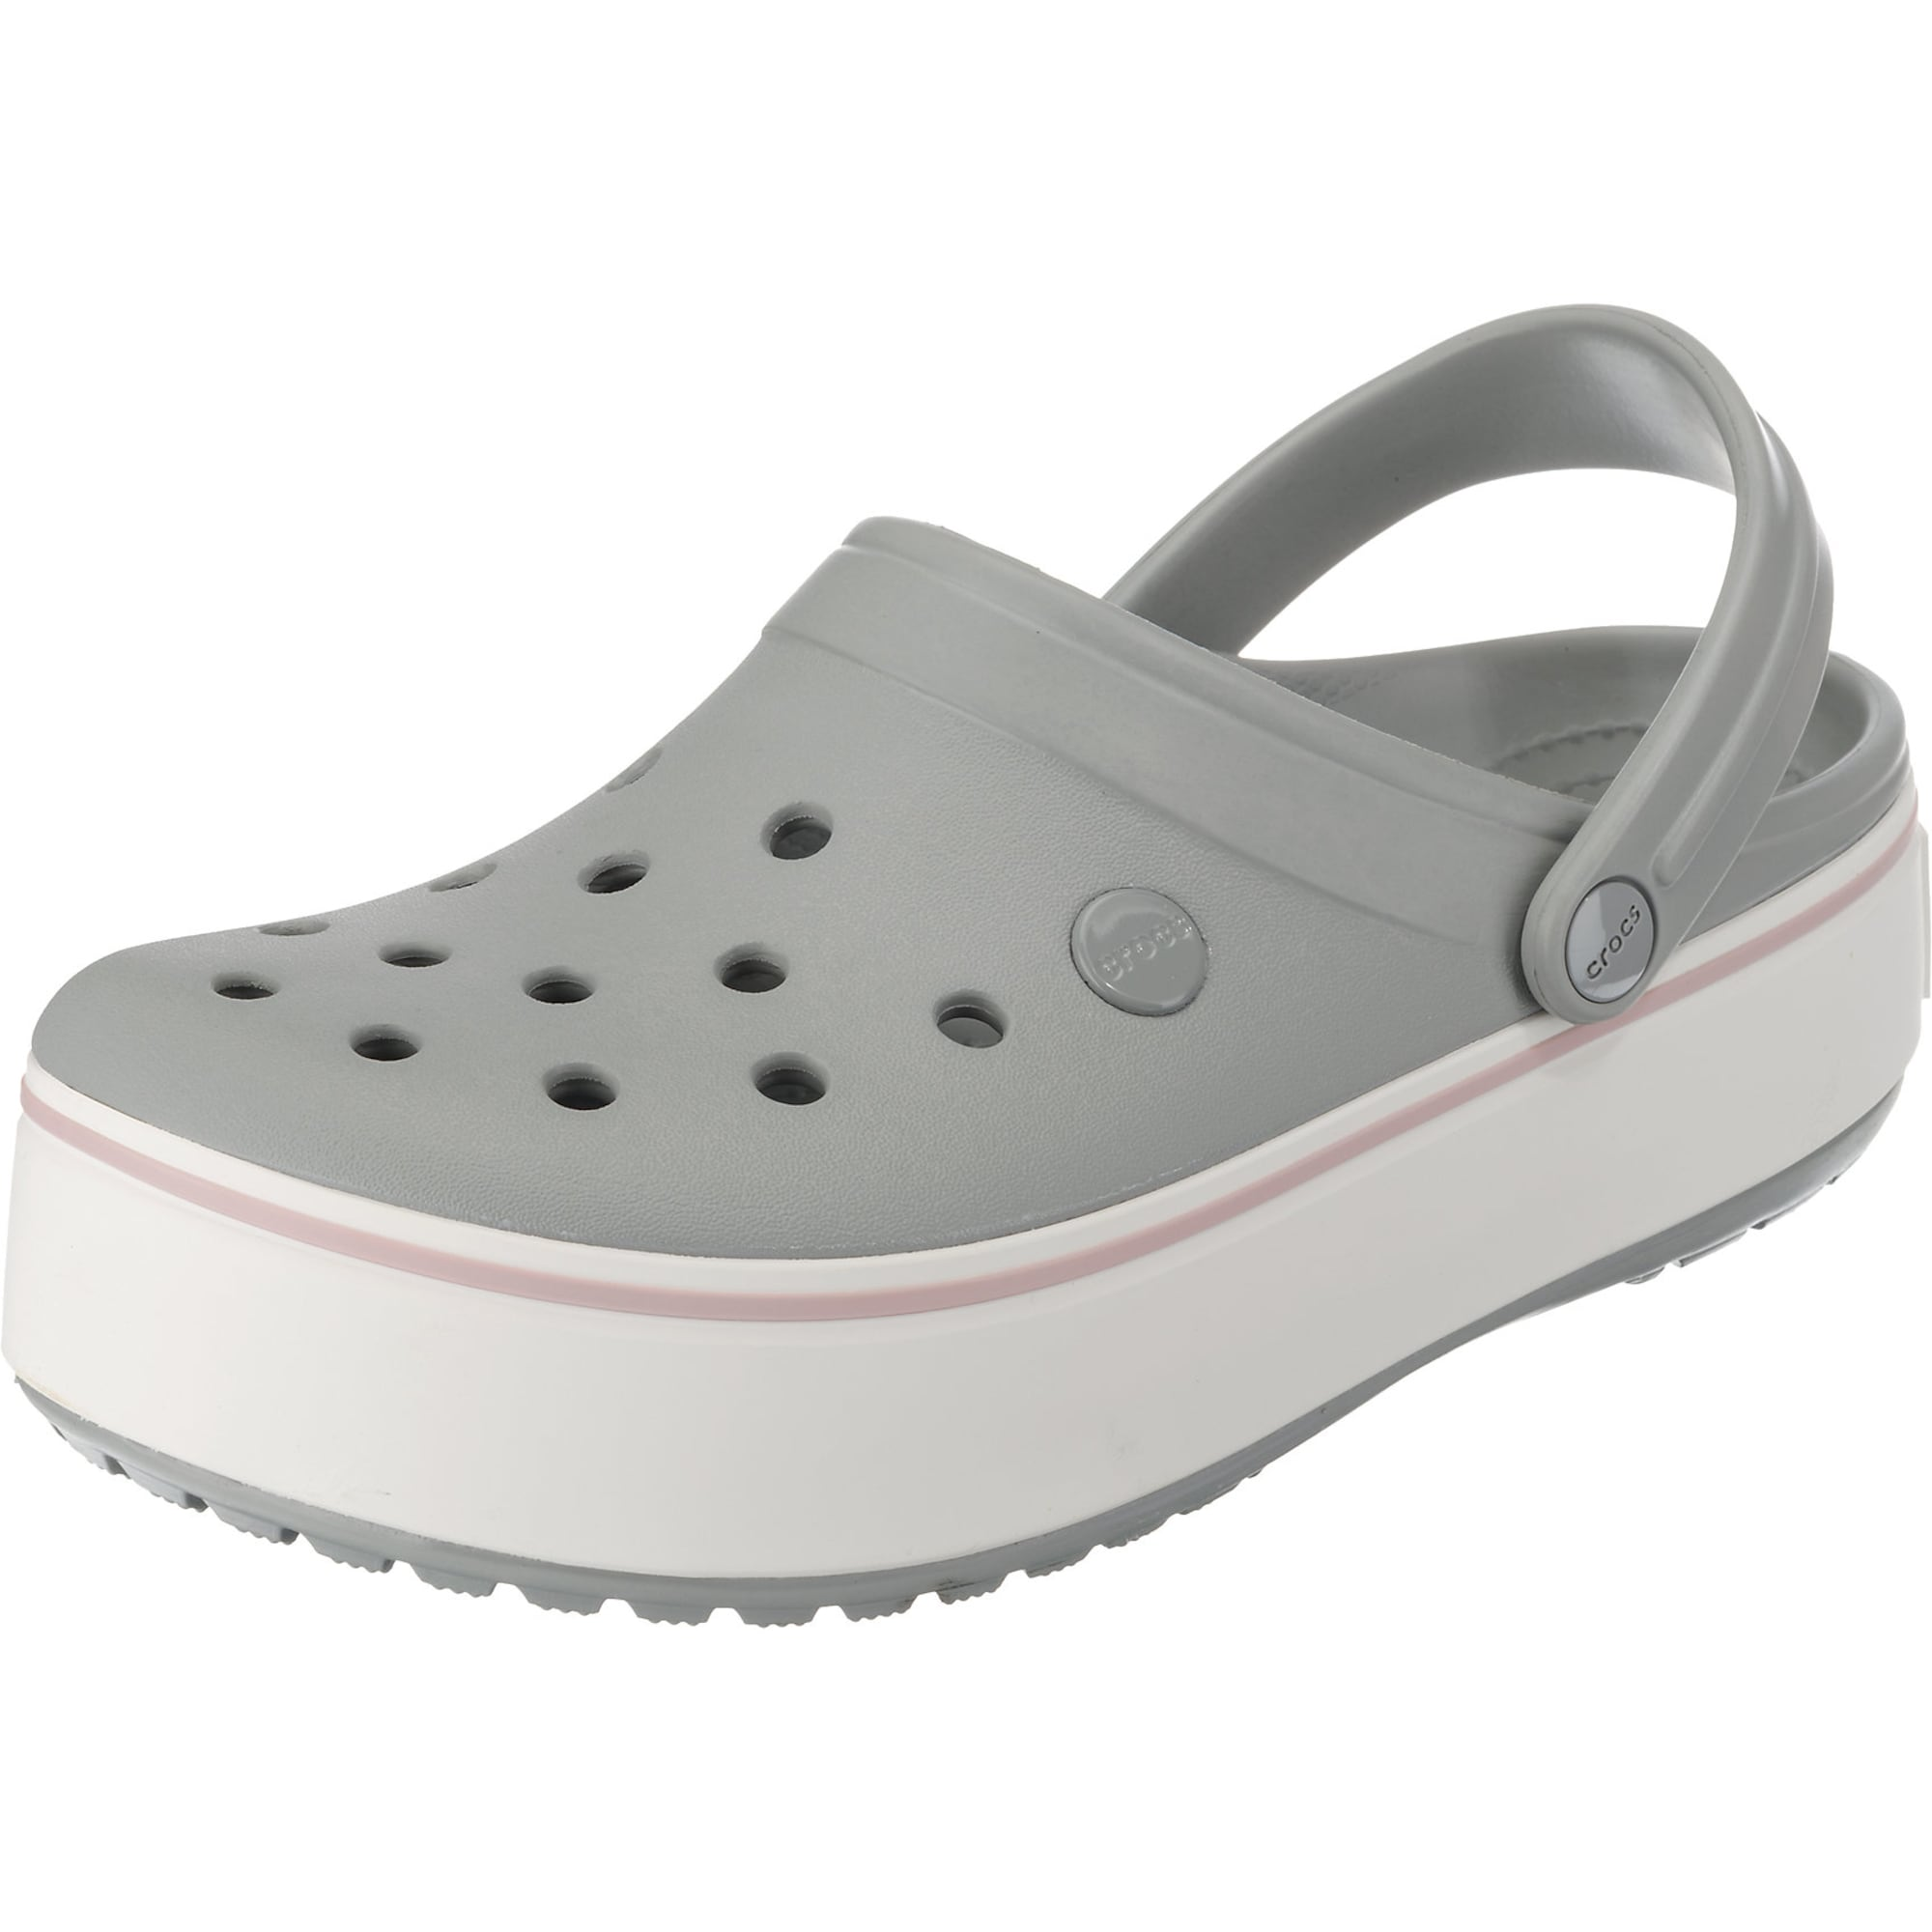 Crocs, Dames Clogs 'Crocband', grijs / rosa / wit